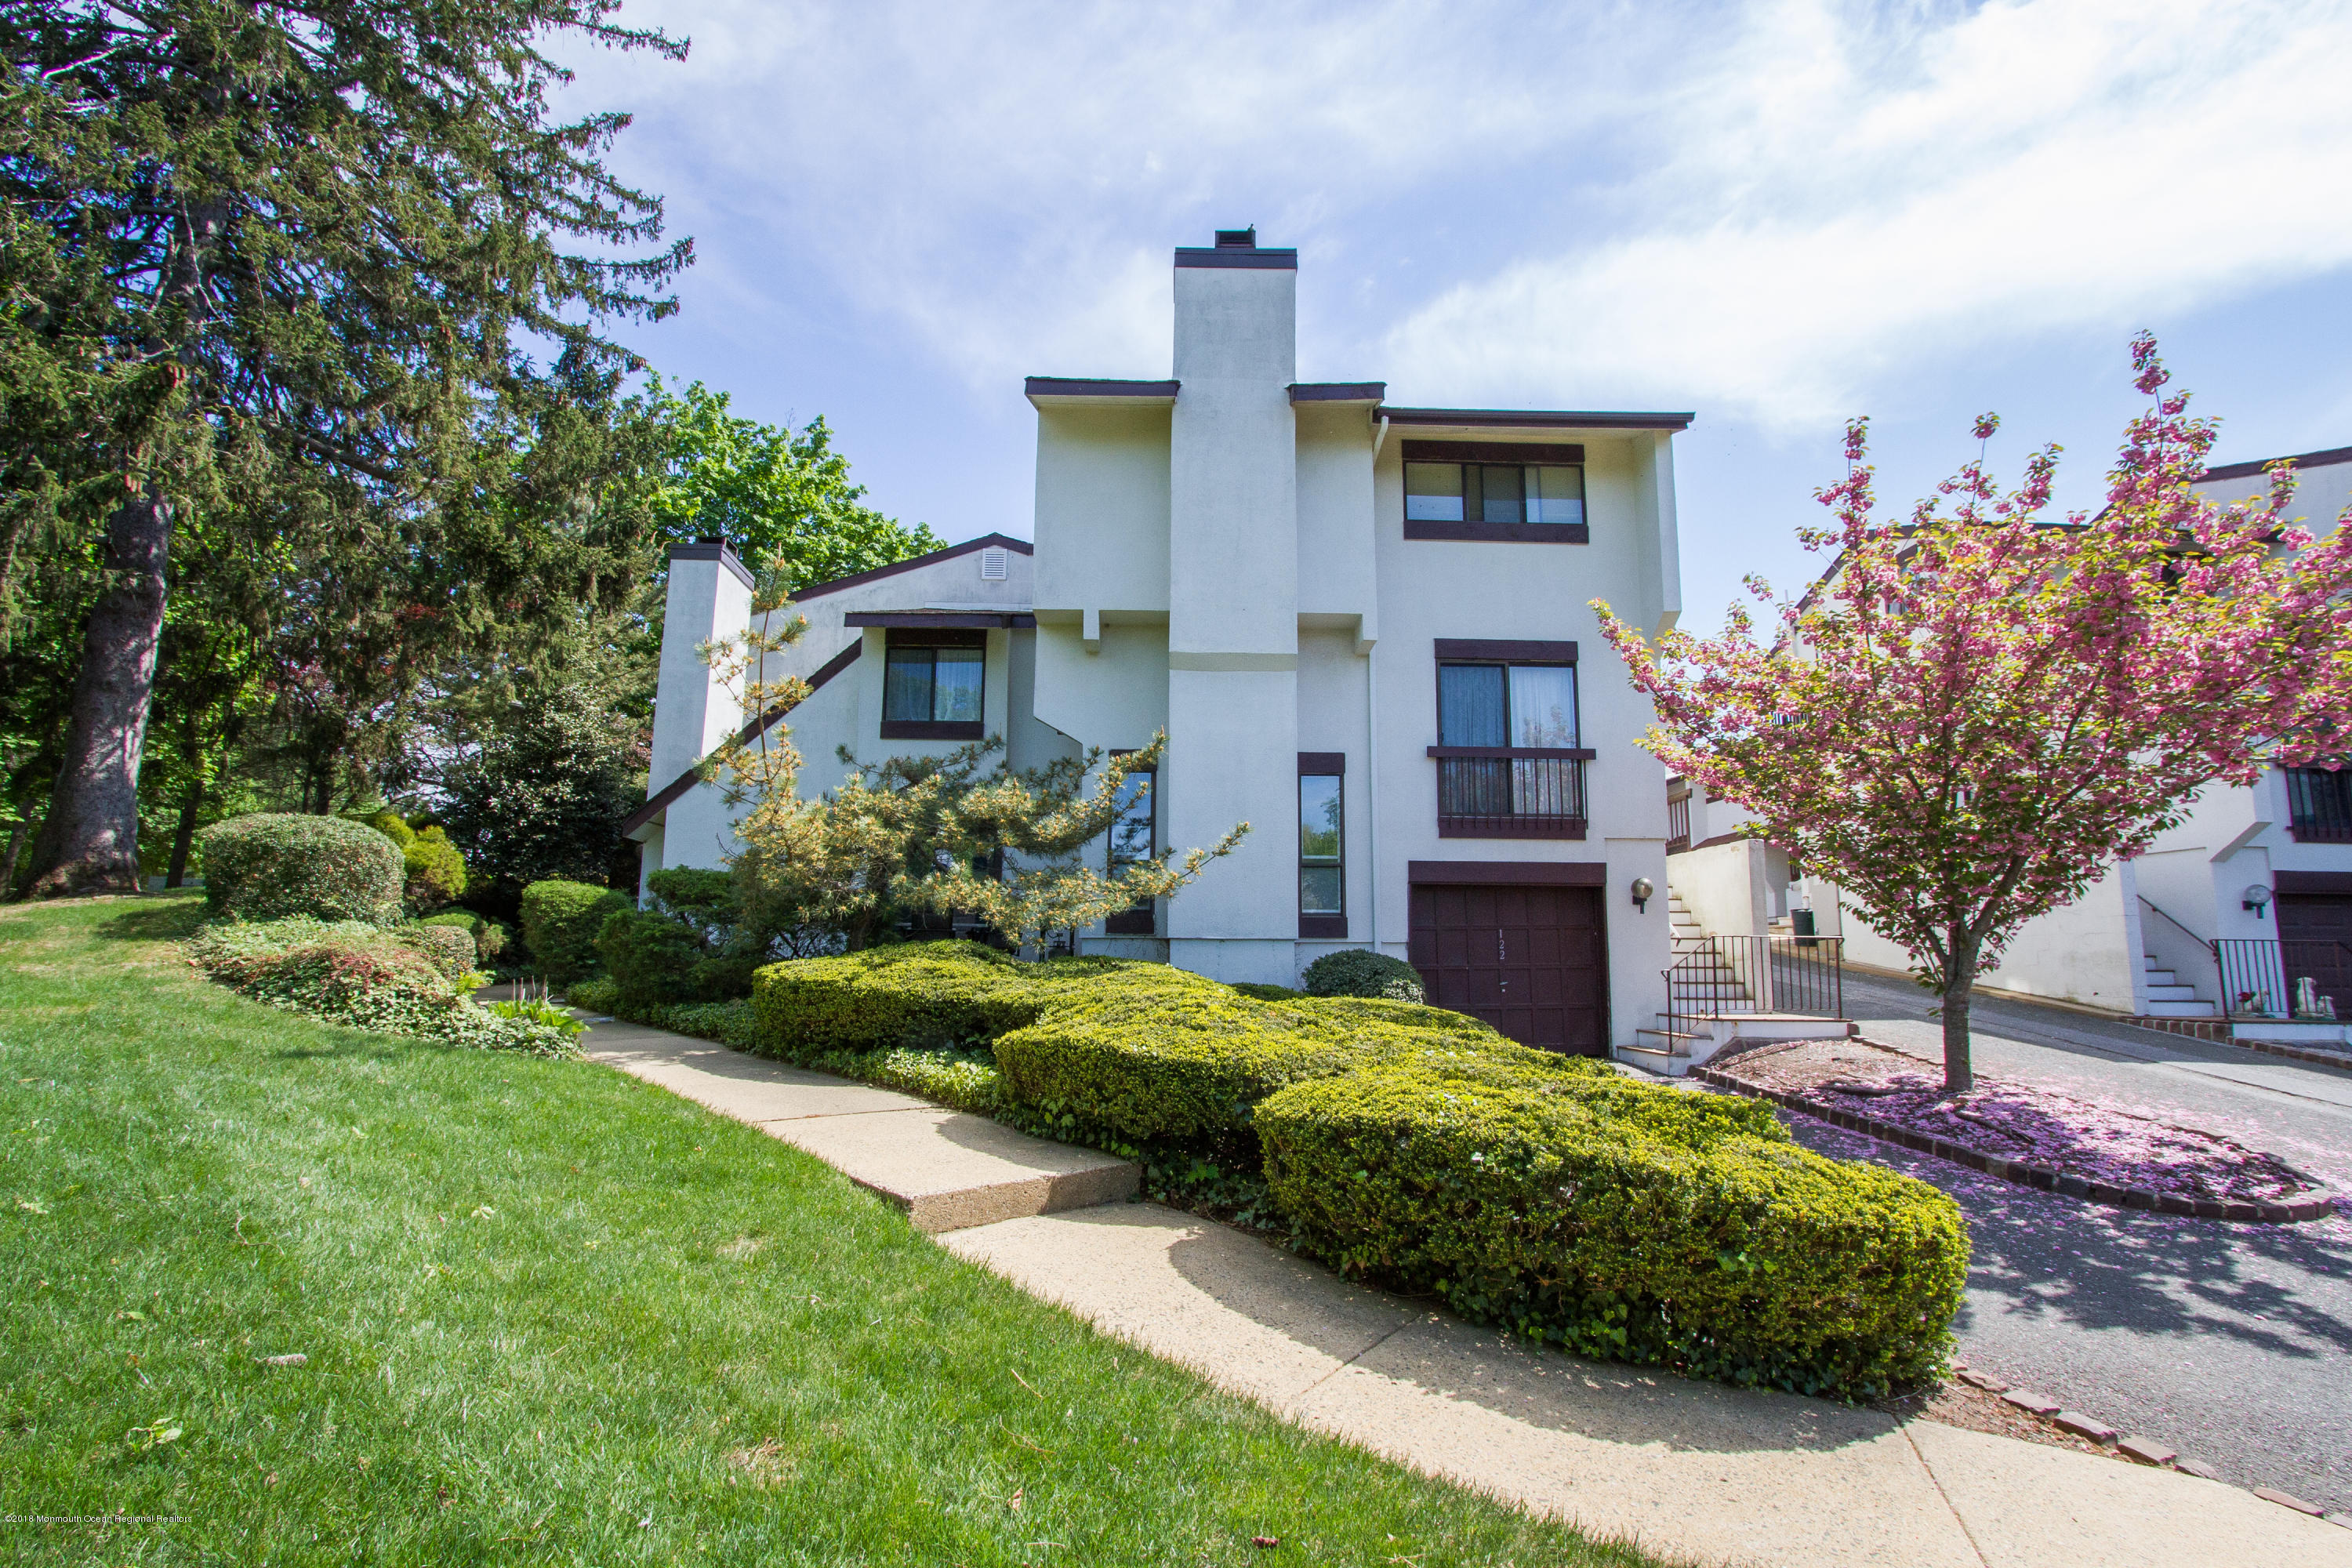 122 TOWER HILL DRIVE, RED BANK, NJ 07701